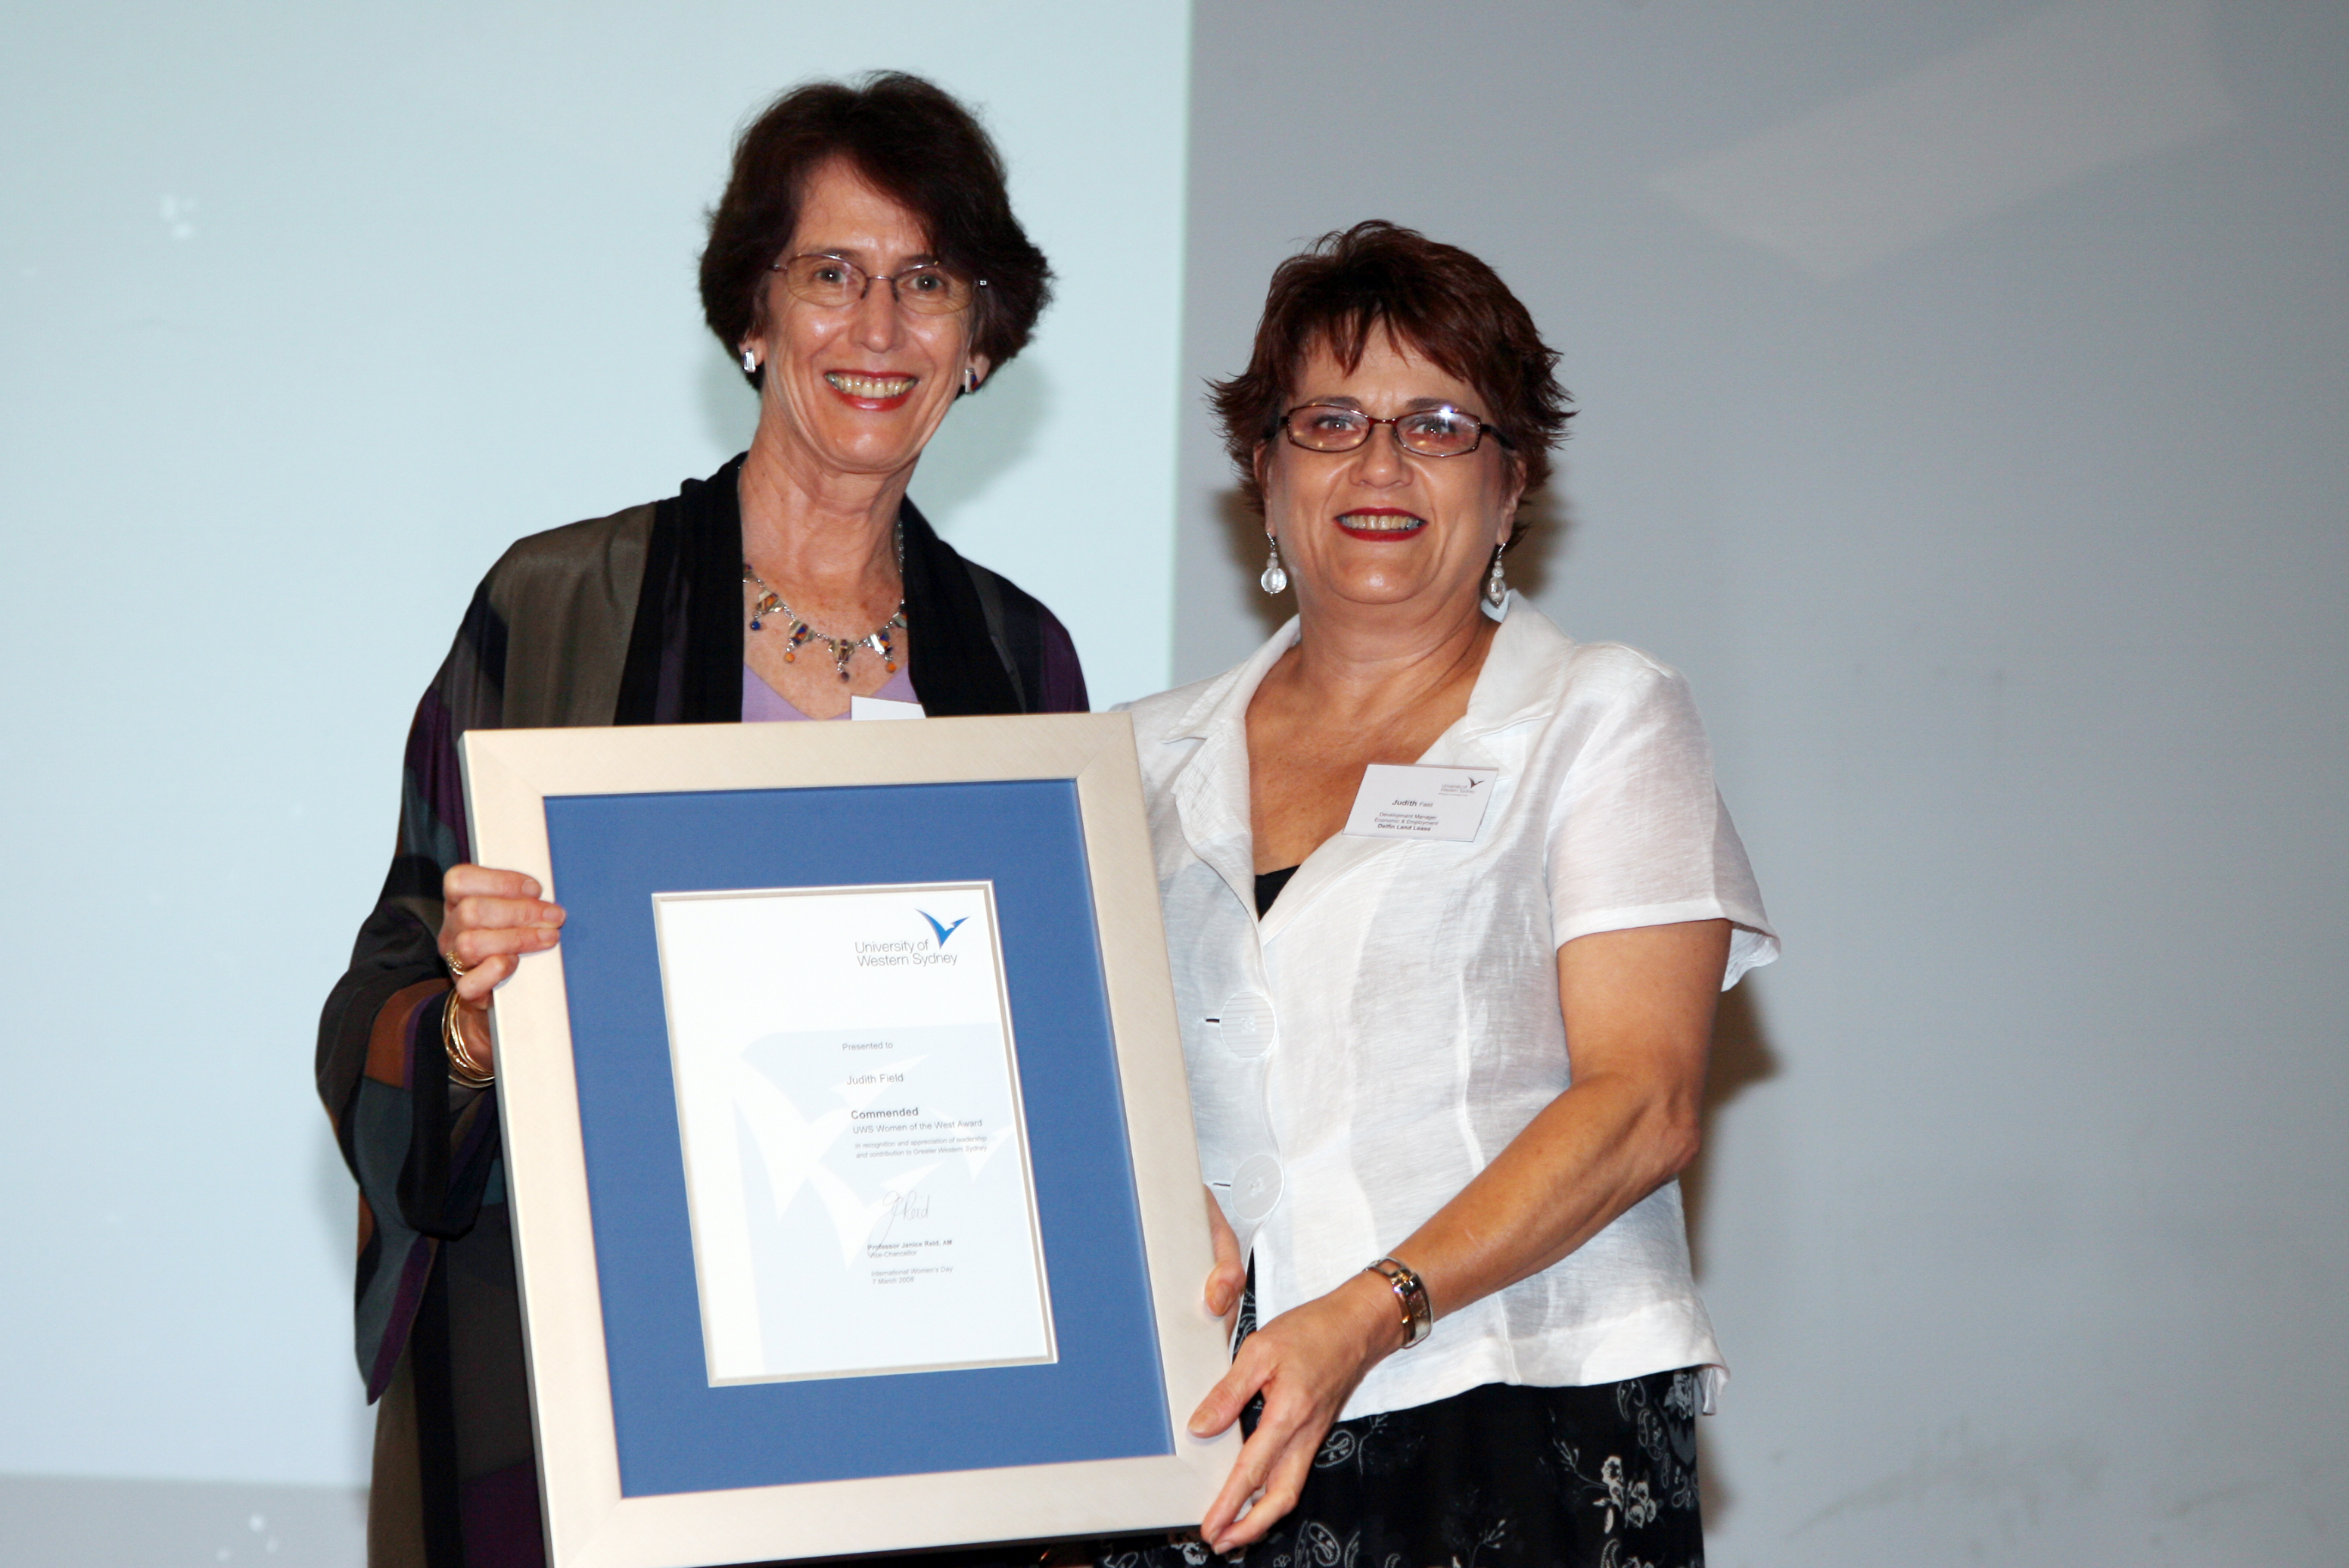 Vice-Chancellor Professor Janice Reid AM presents Judith Field with the Commended Award.